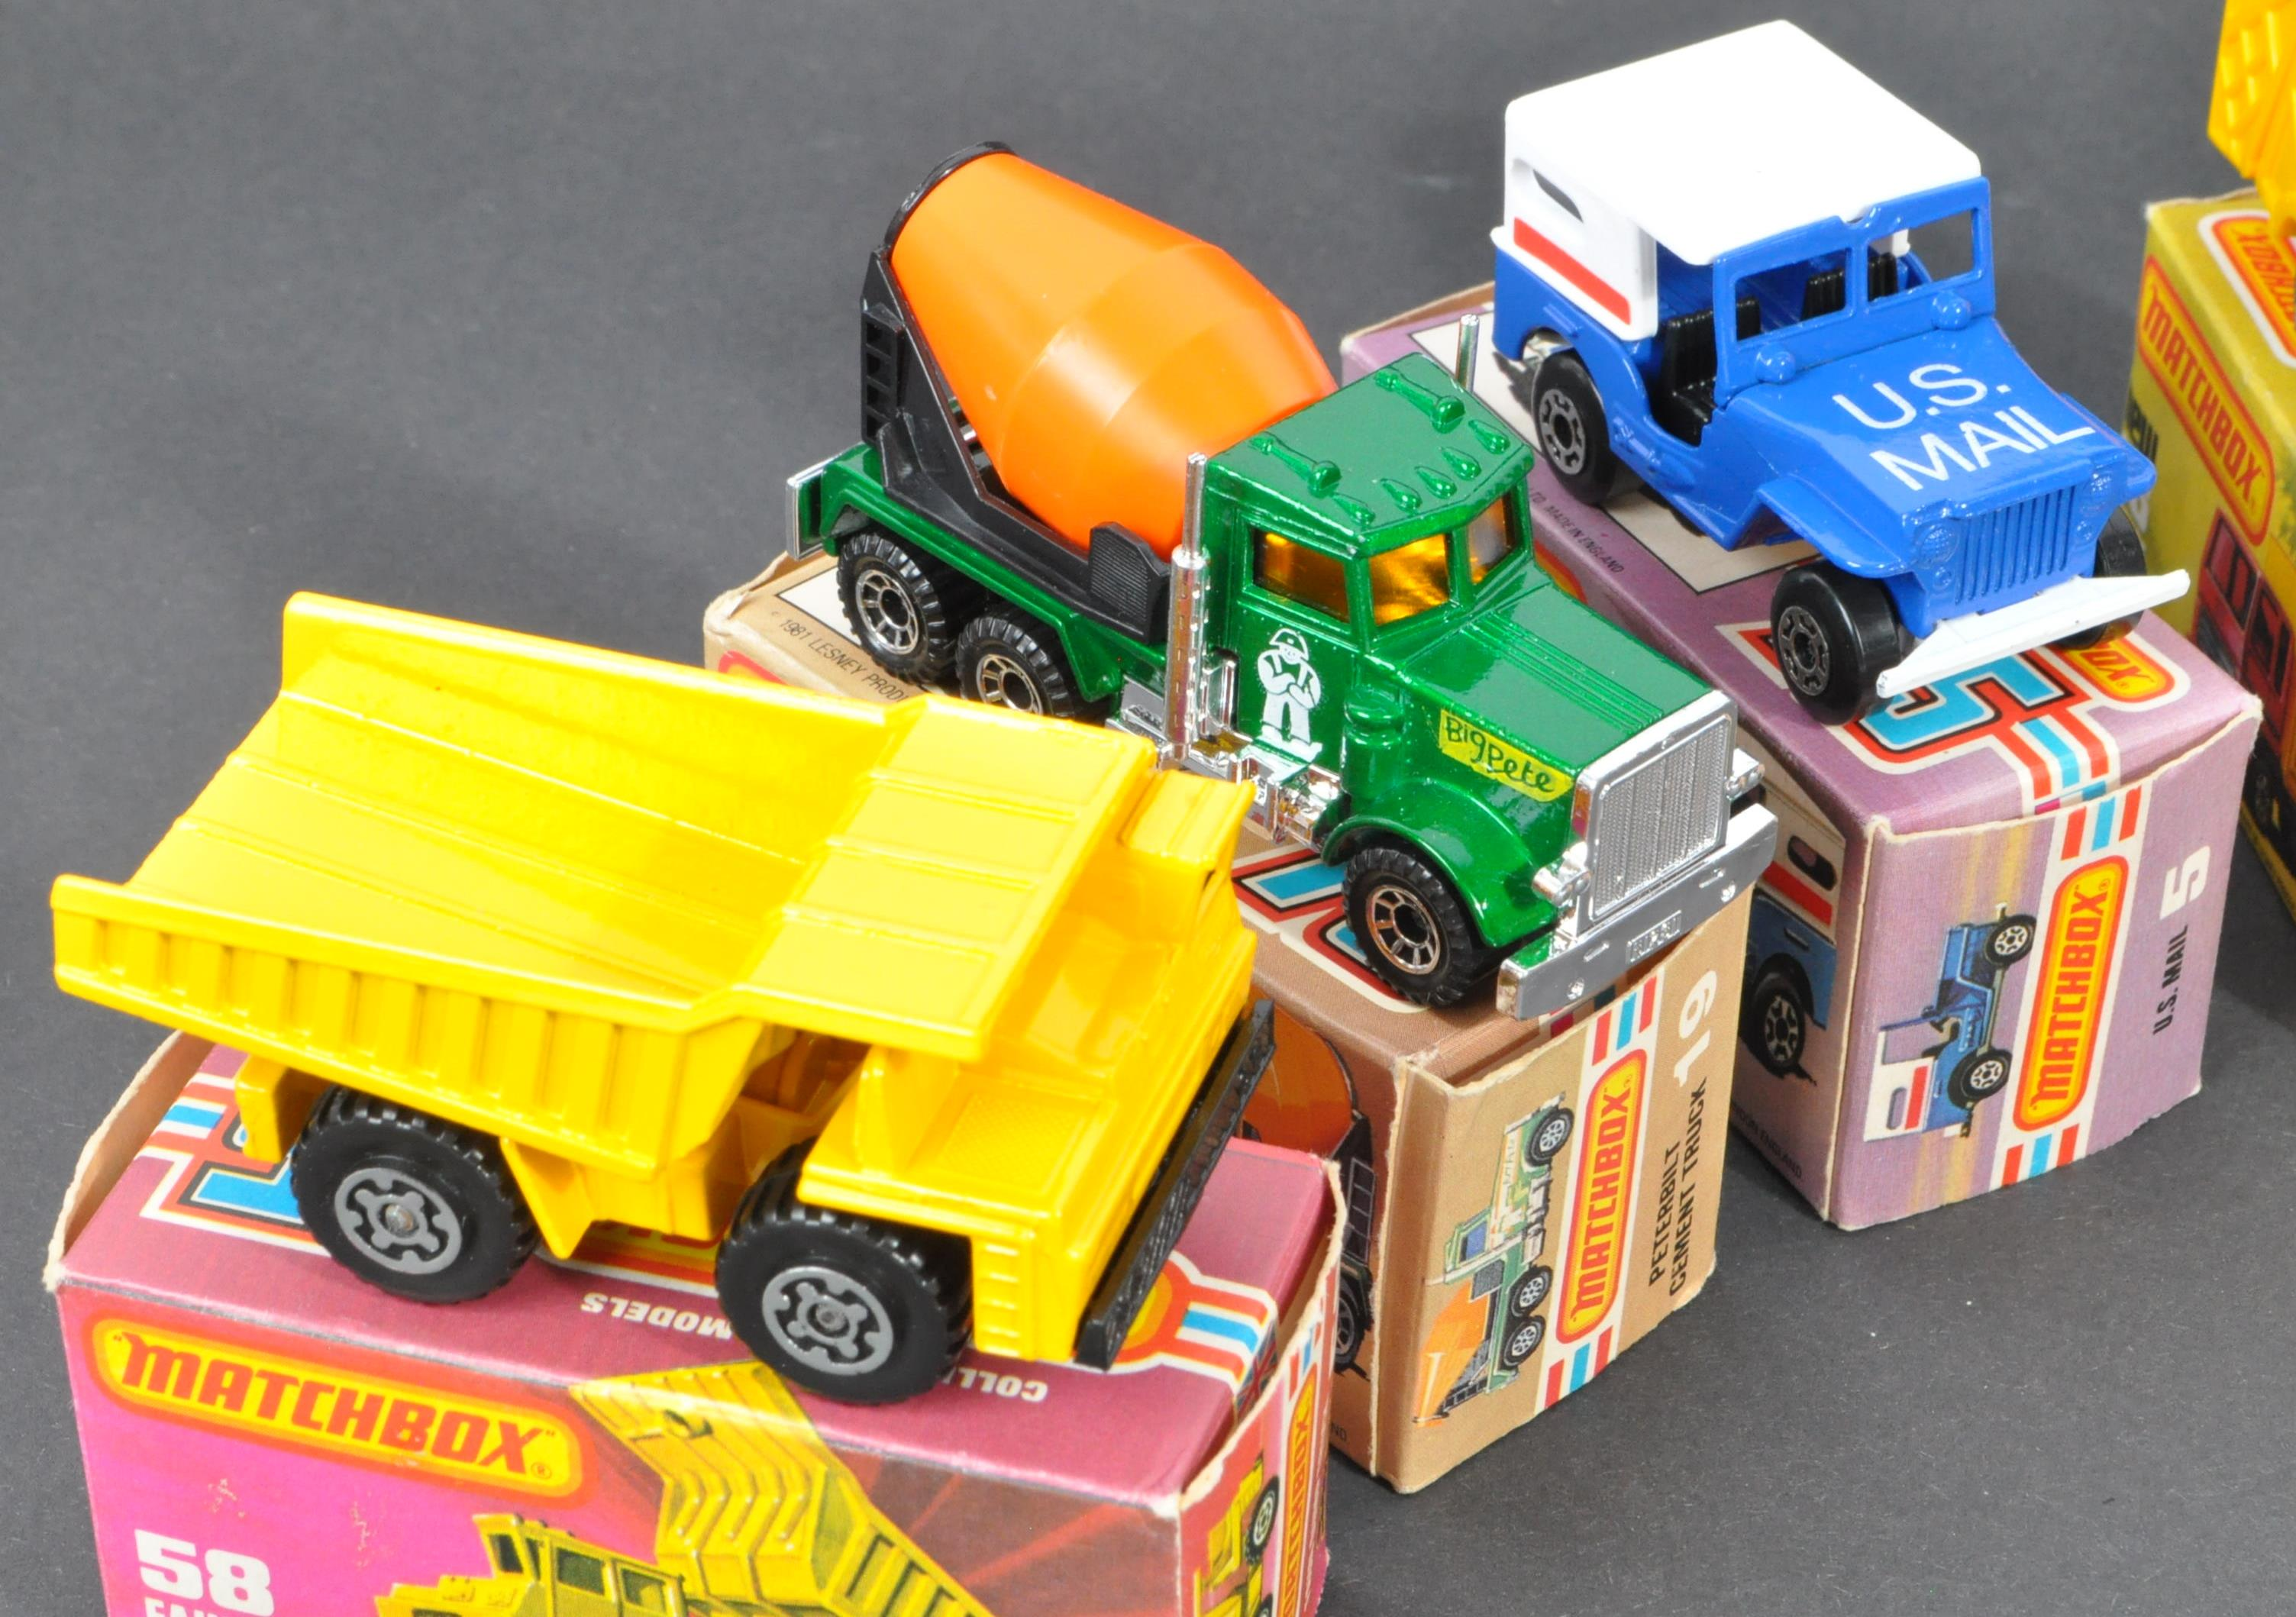 COLLECTION OF VINTAGE MATCHBOX 1-75 SERIES BOXED DIECAST MODELS - Image 2 of 4